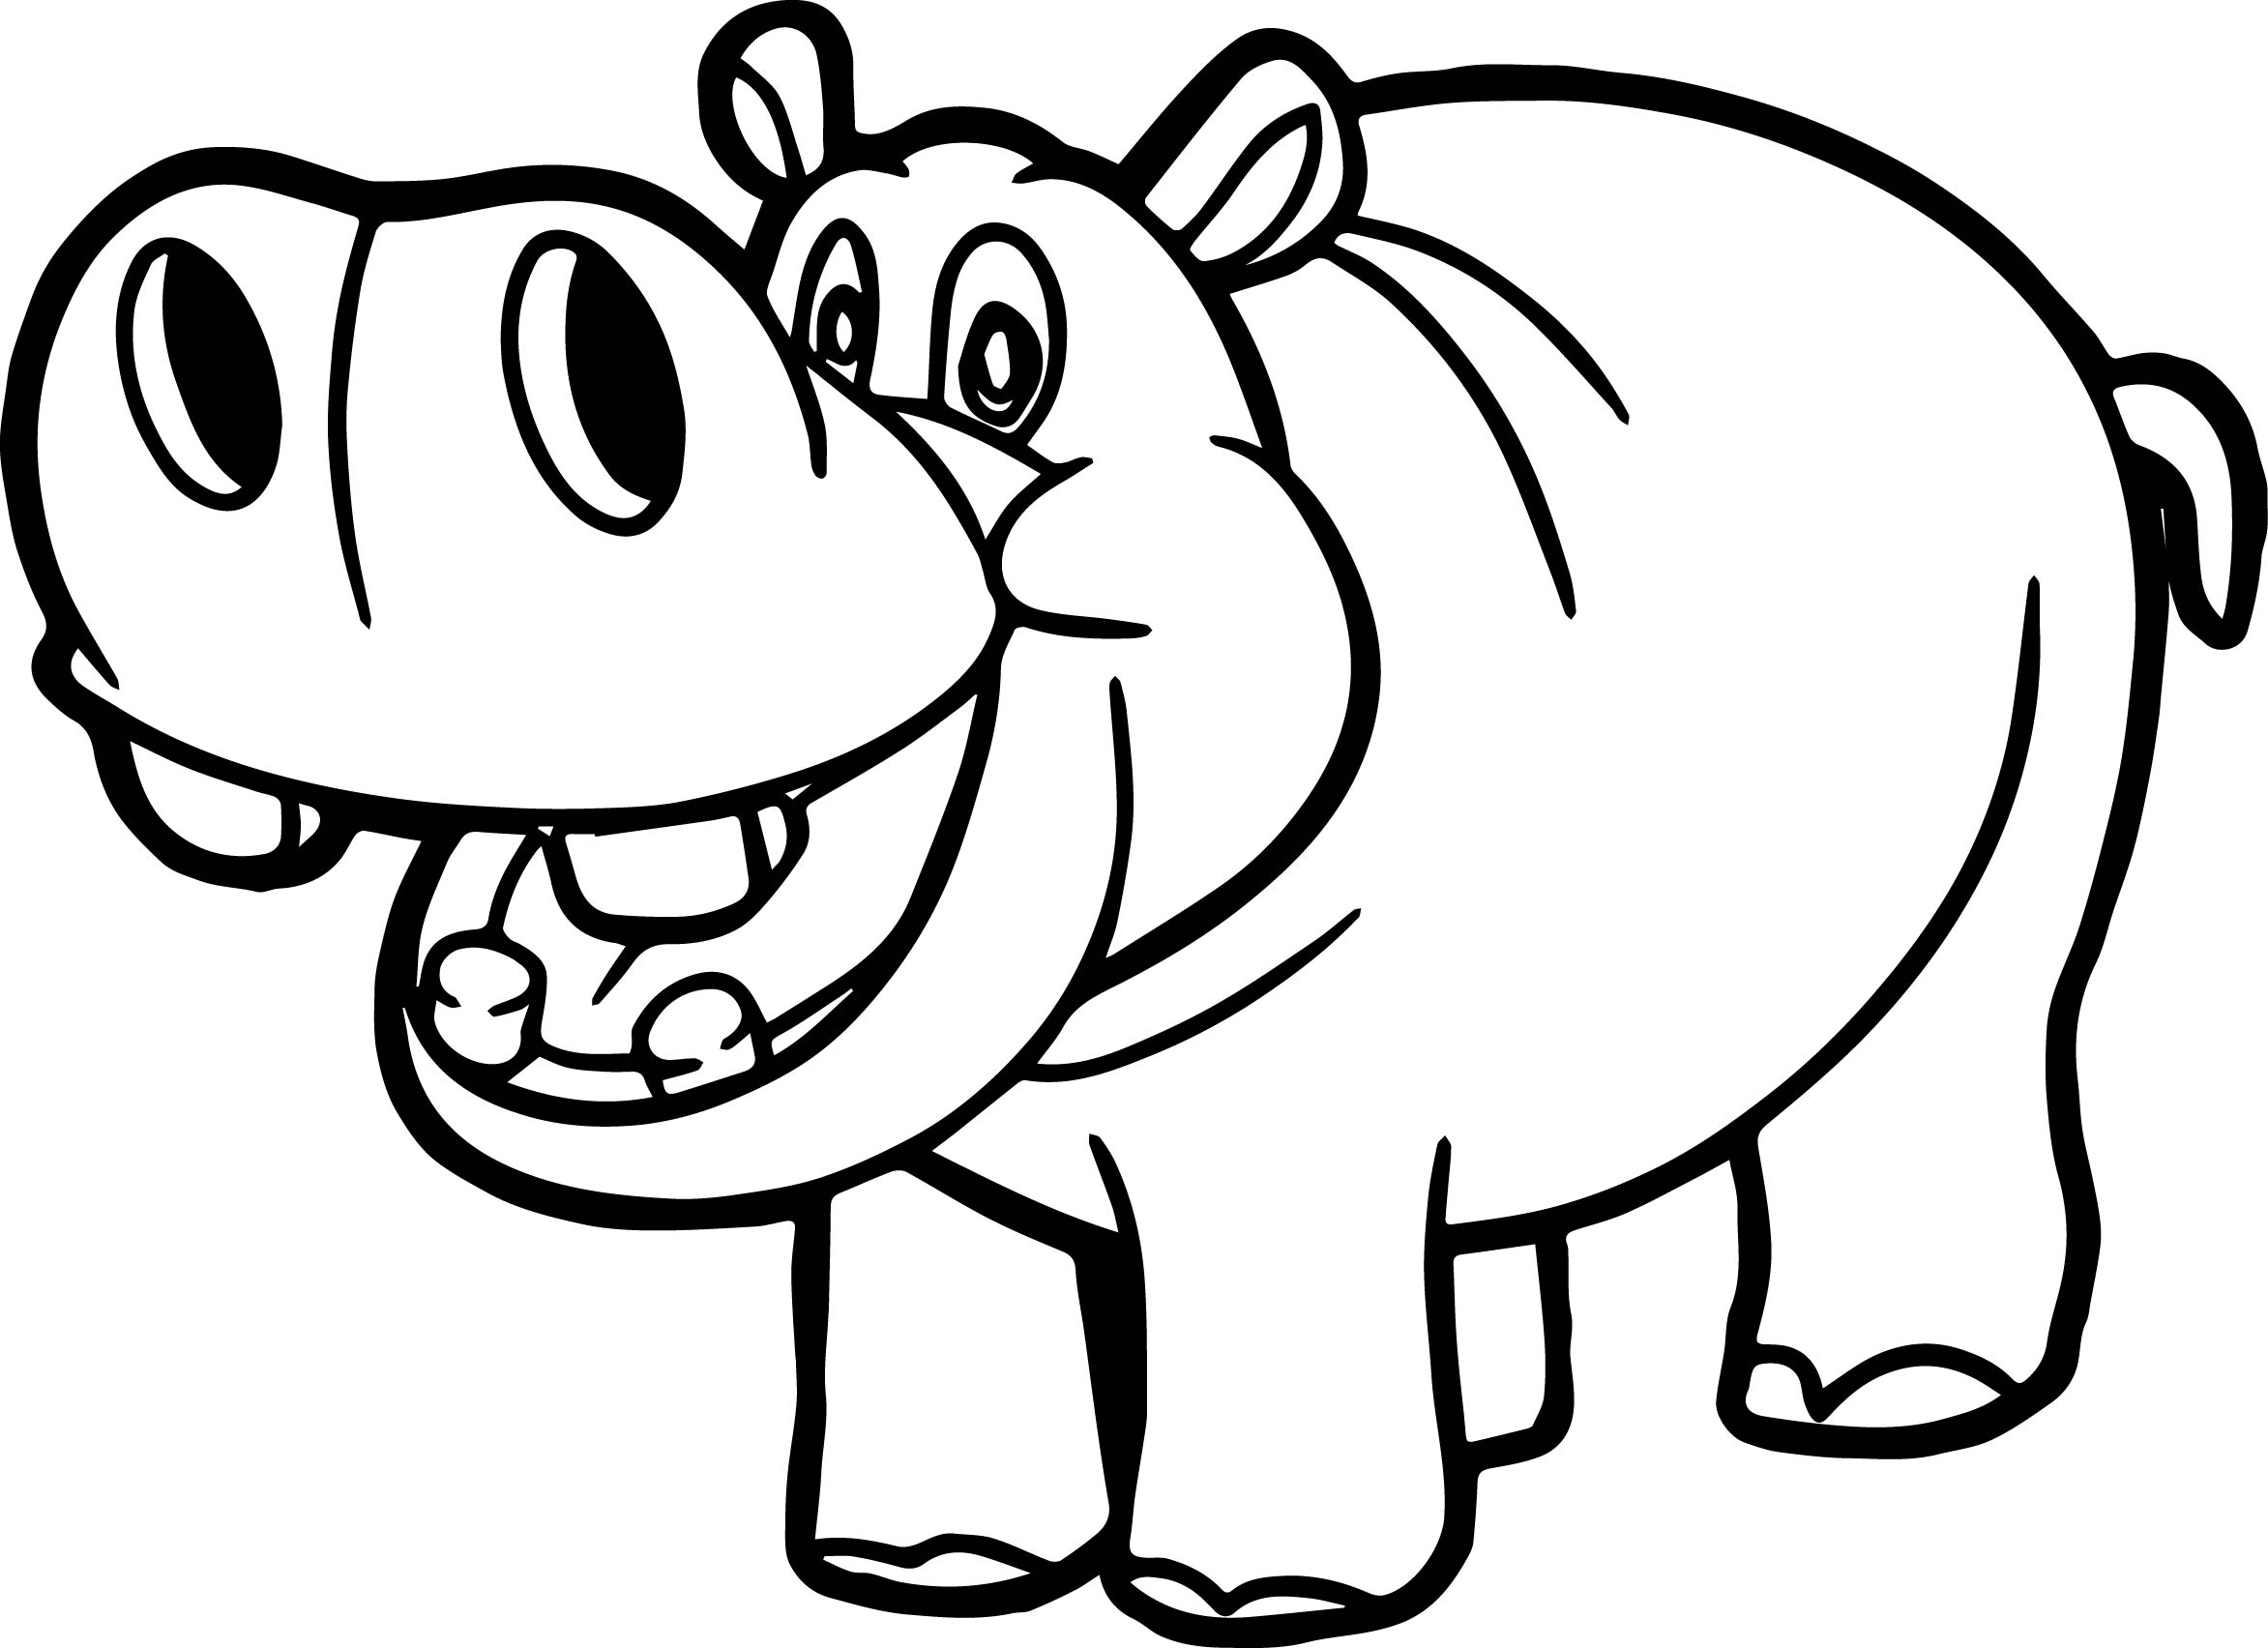 Hippo Outline Drawing At Getdrawings